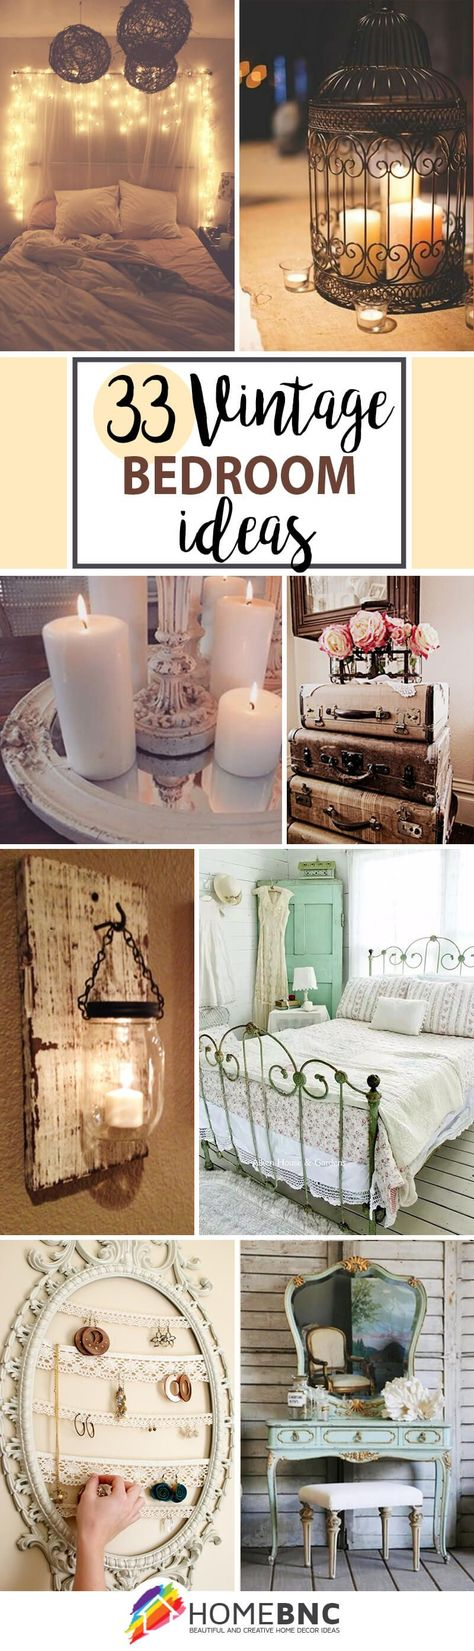 33 Vintage Bedroom Decor Ideas To Turn Your Room Into A Paradise | Vintage  Bedrooms, Decoration And Bedrooms